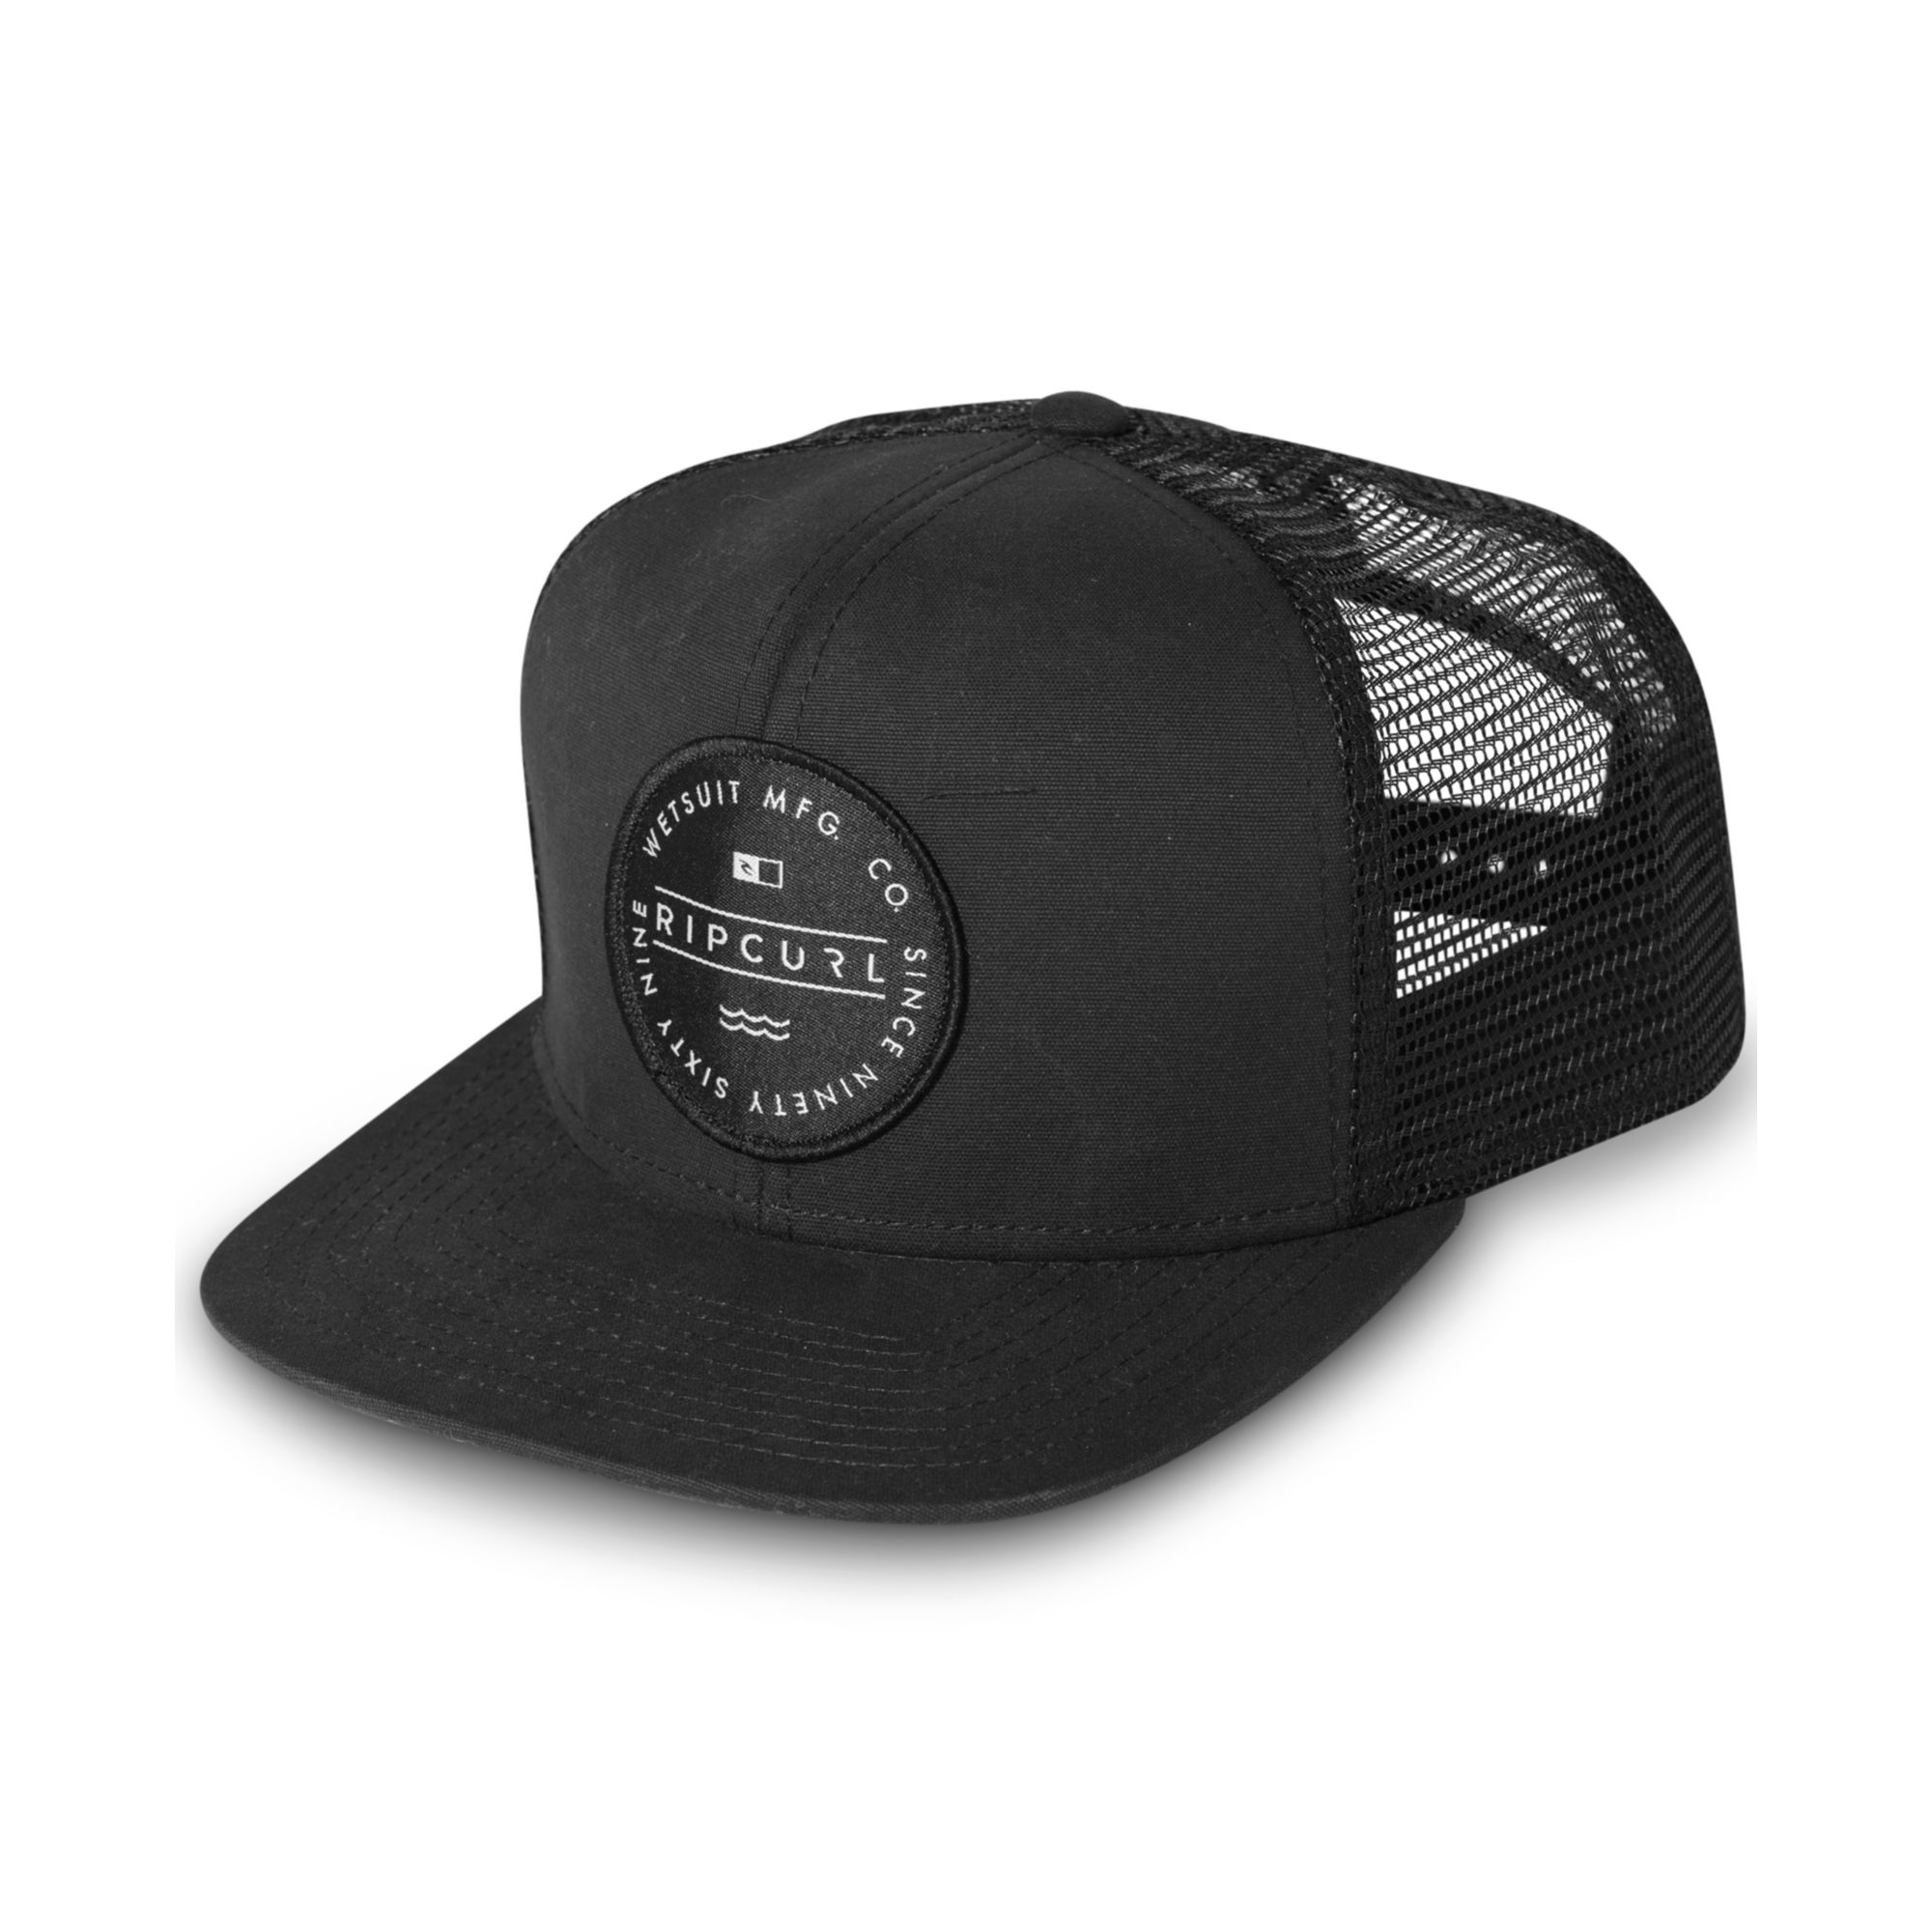 Lyst - Rip Curl Circle Bot Hat in Black for Men aa837e16a0a